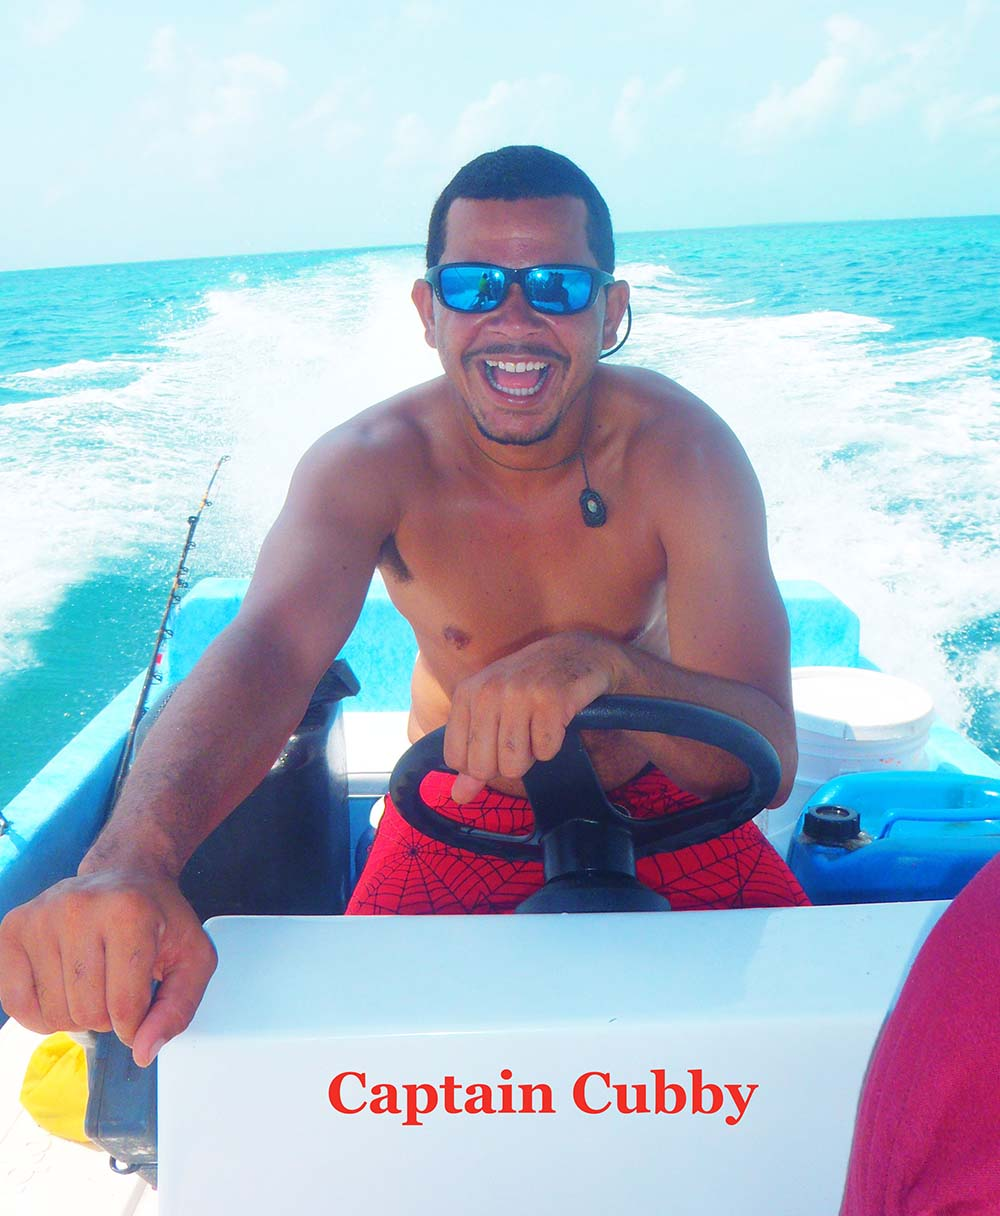 Captain Cubby of Placencia Adventures by land or sea